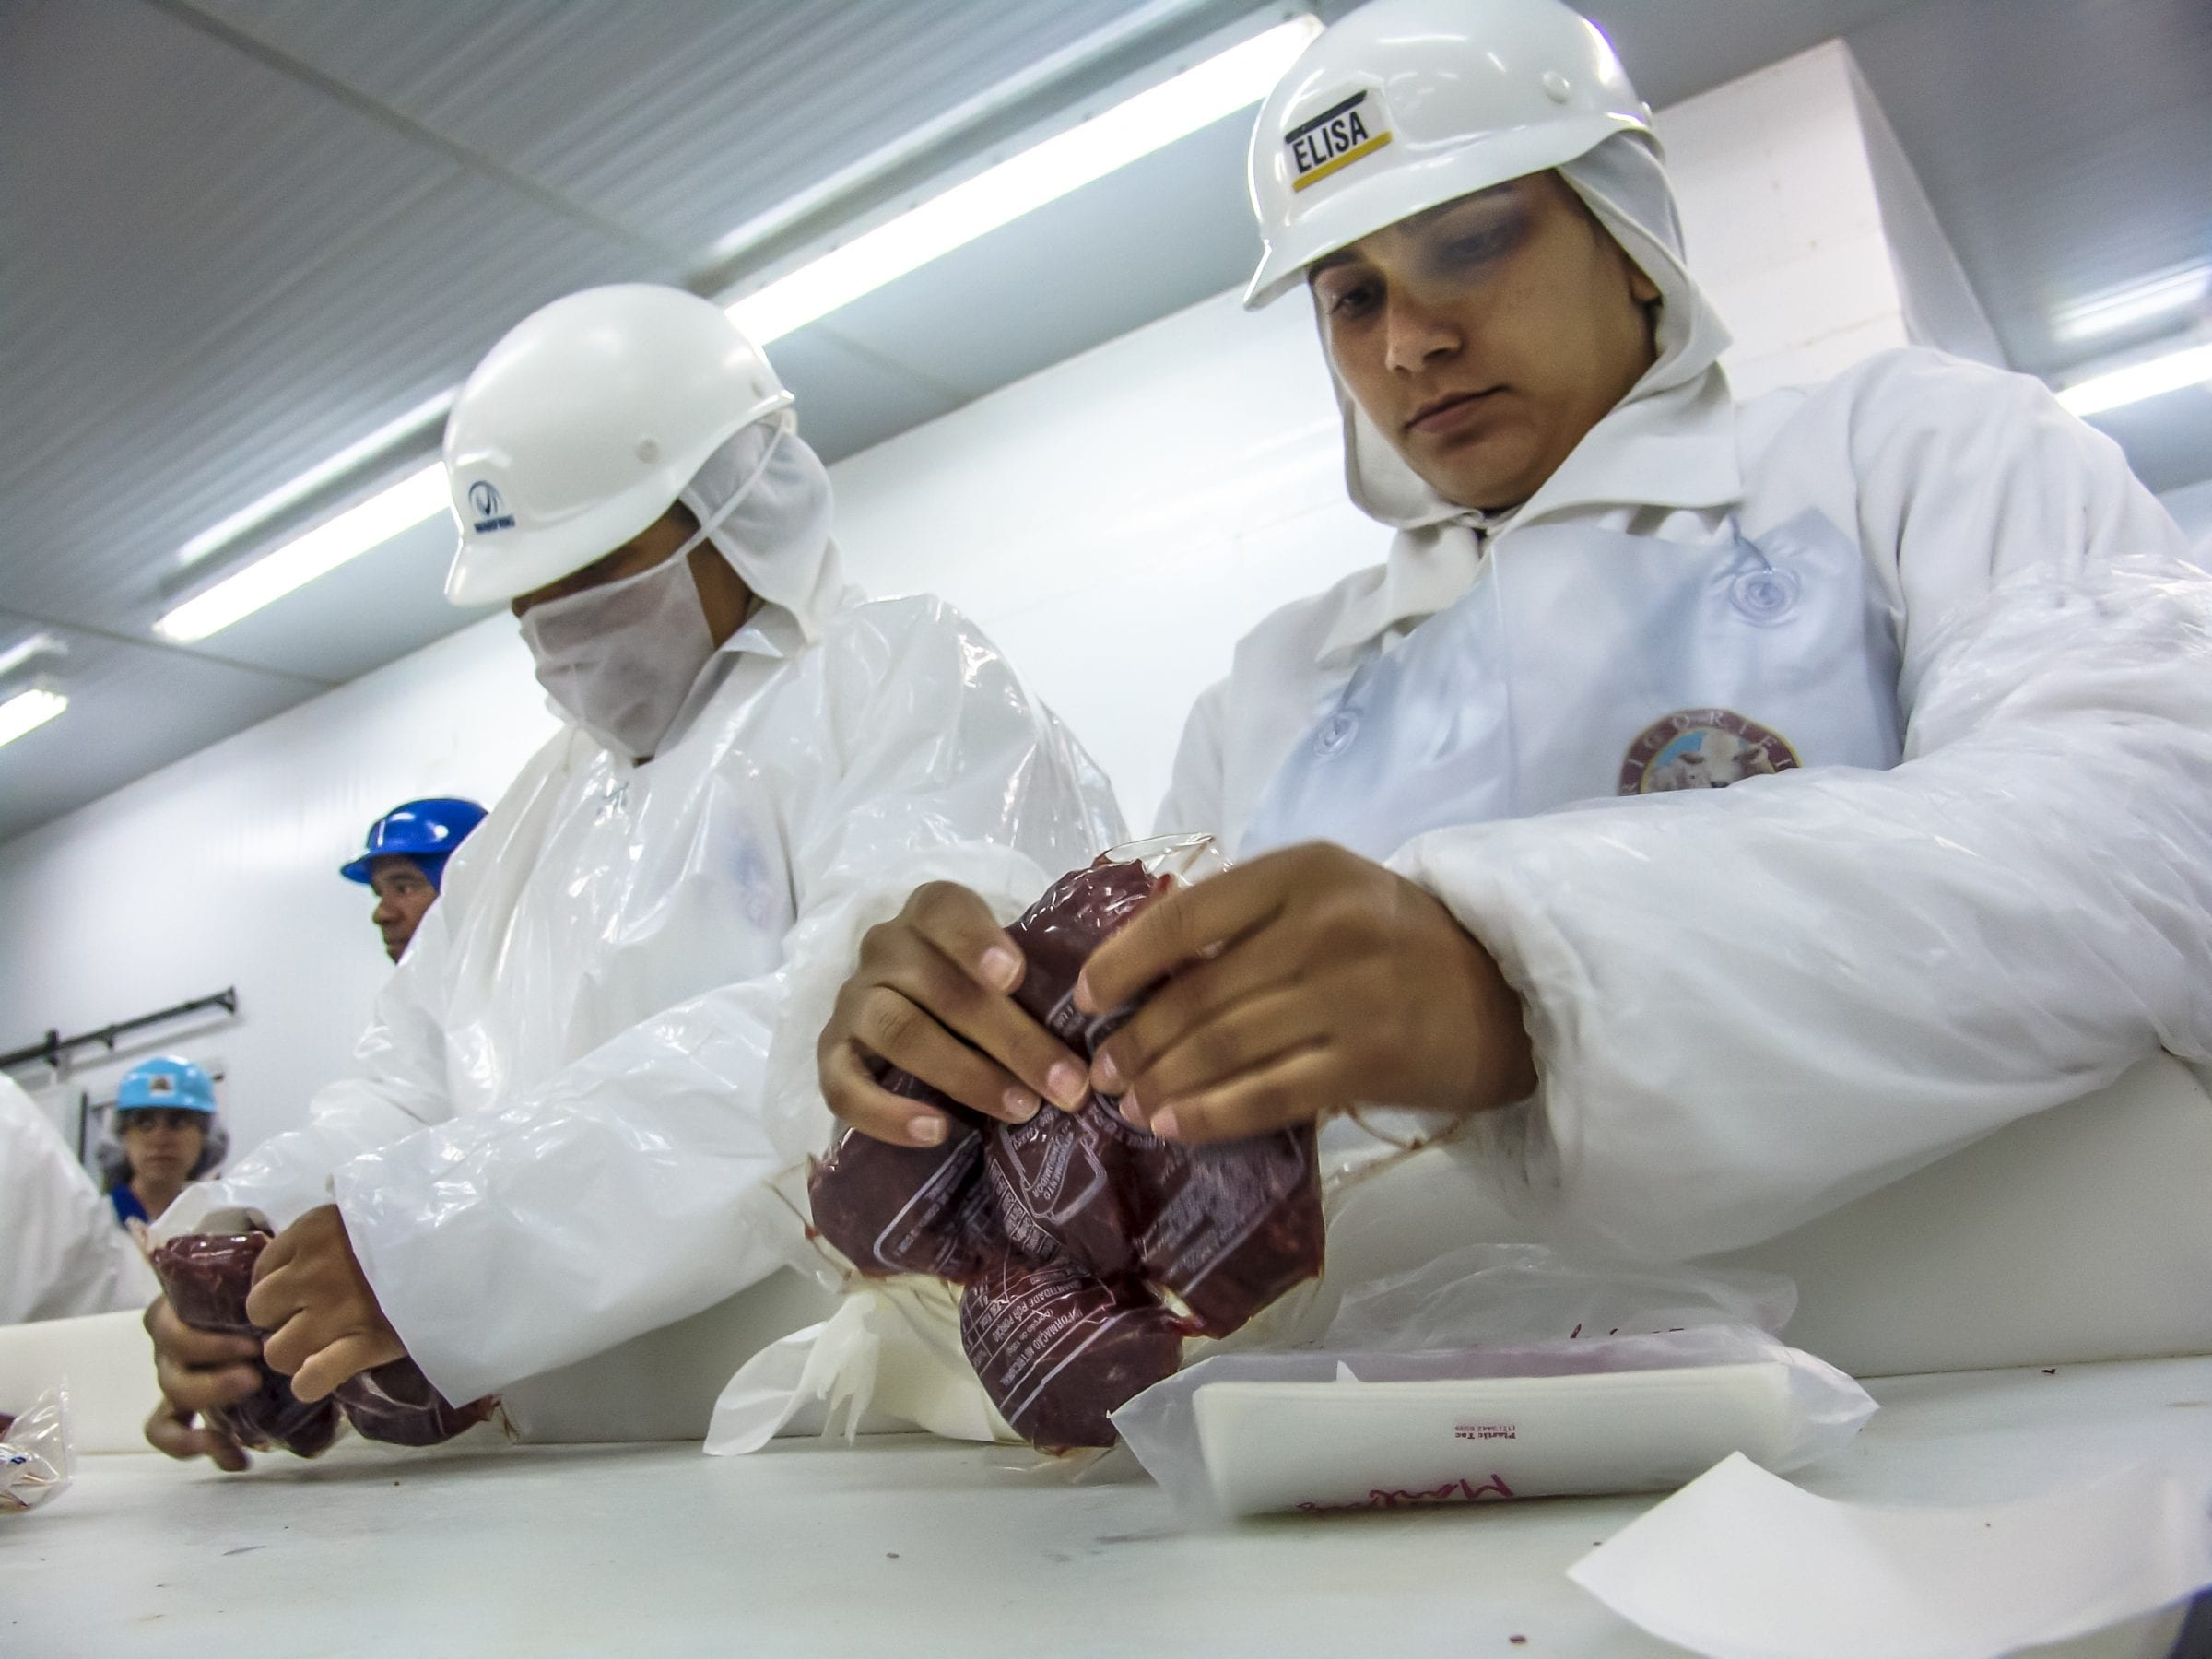 Sao Paulo, Brazil, March 09, 2006. Meat processing in food industry